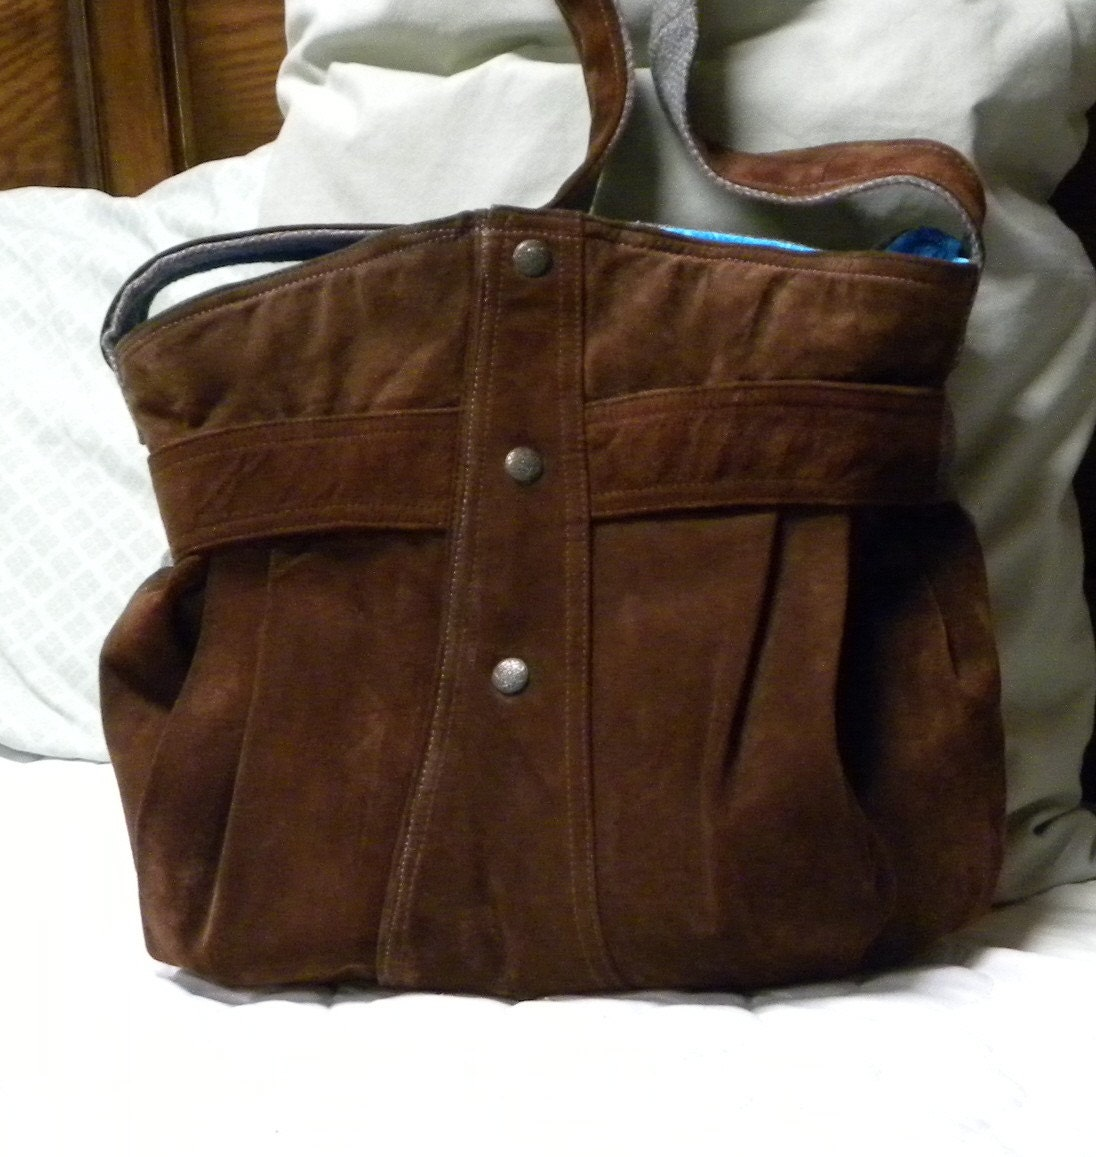 Handmade from a Rusty Brown Leather Jacket and Tweed Sport Coat - Handbag - Tote - Purse